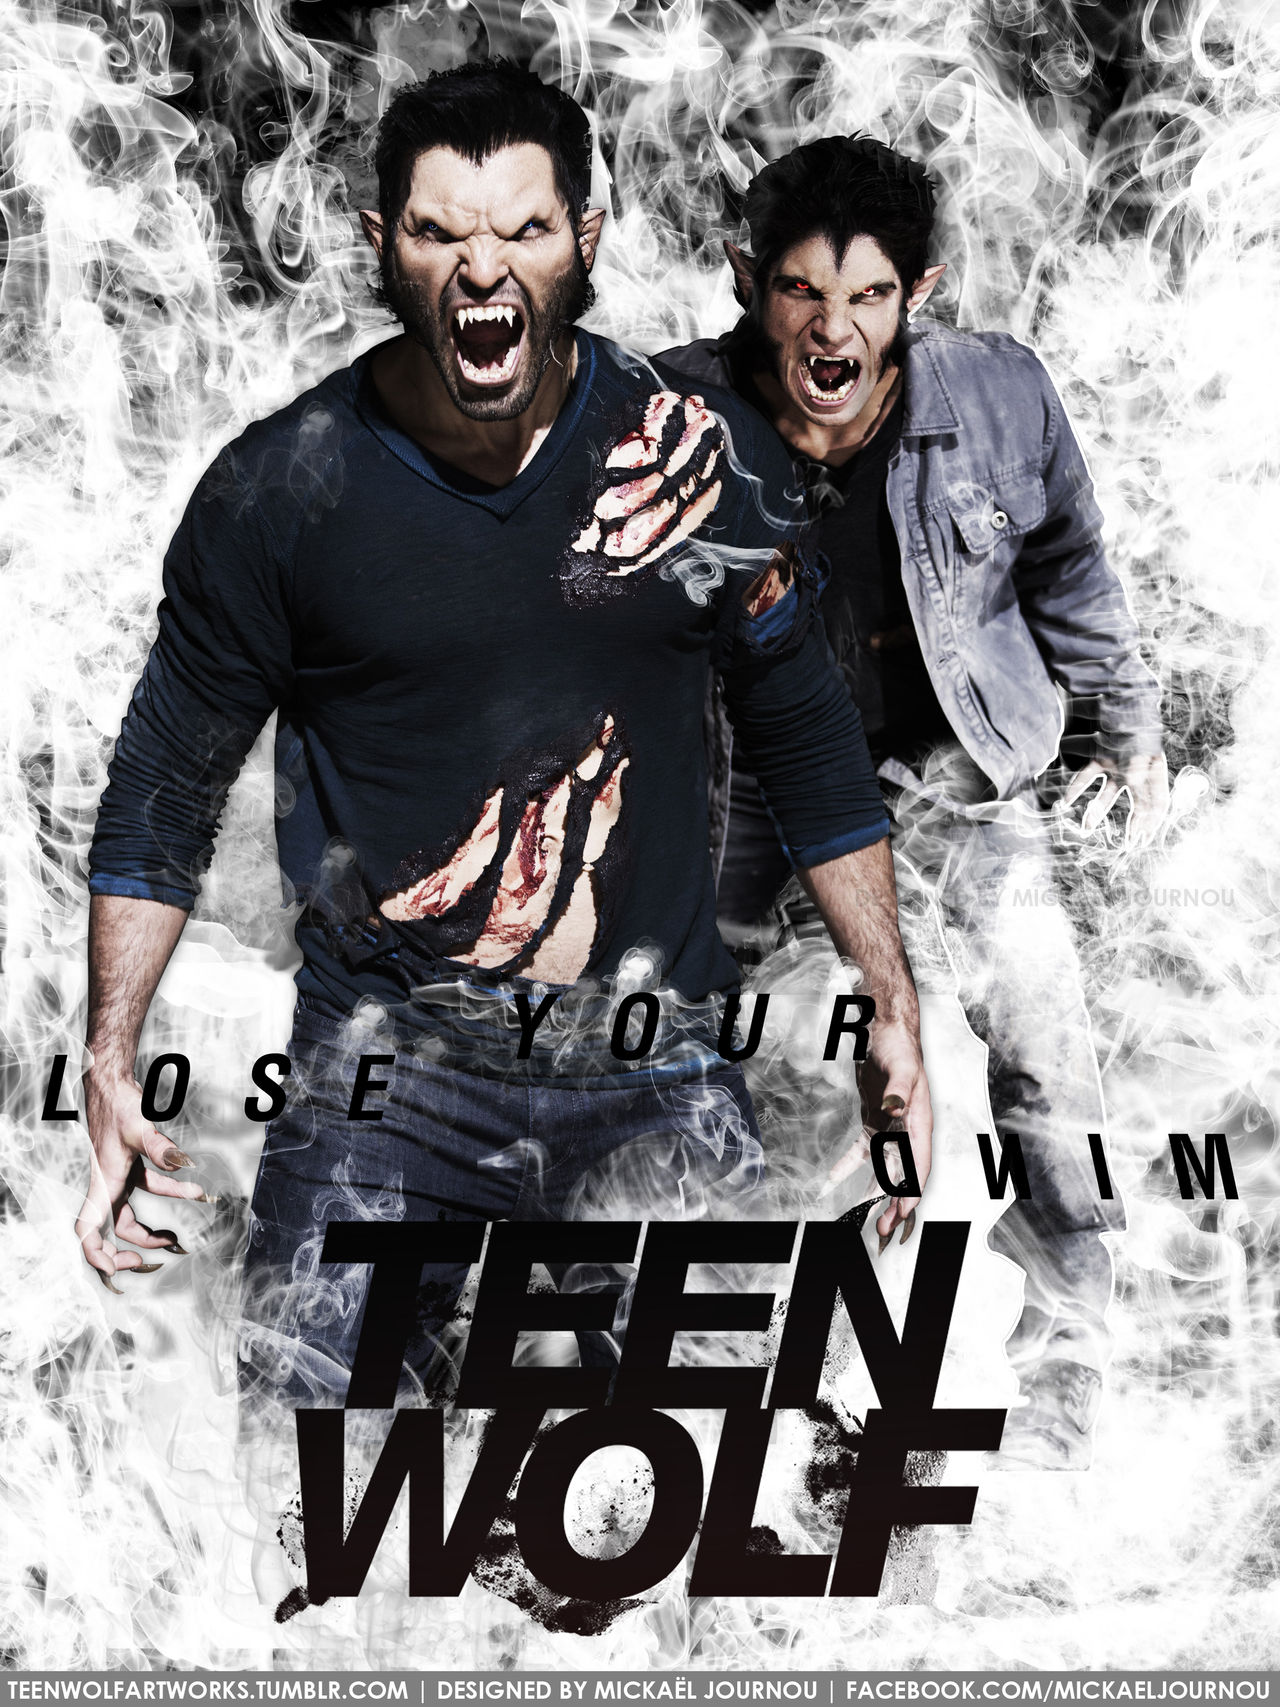 Teen Wolf Soundtrack - Complete 6 Seasons on Spotify